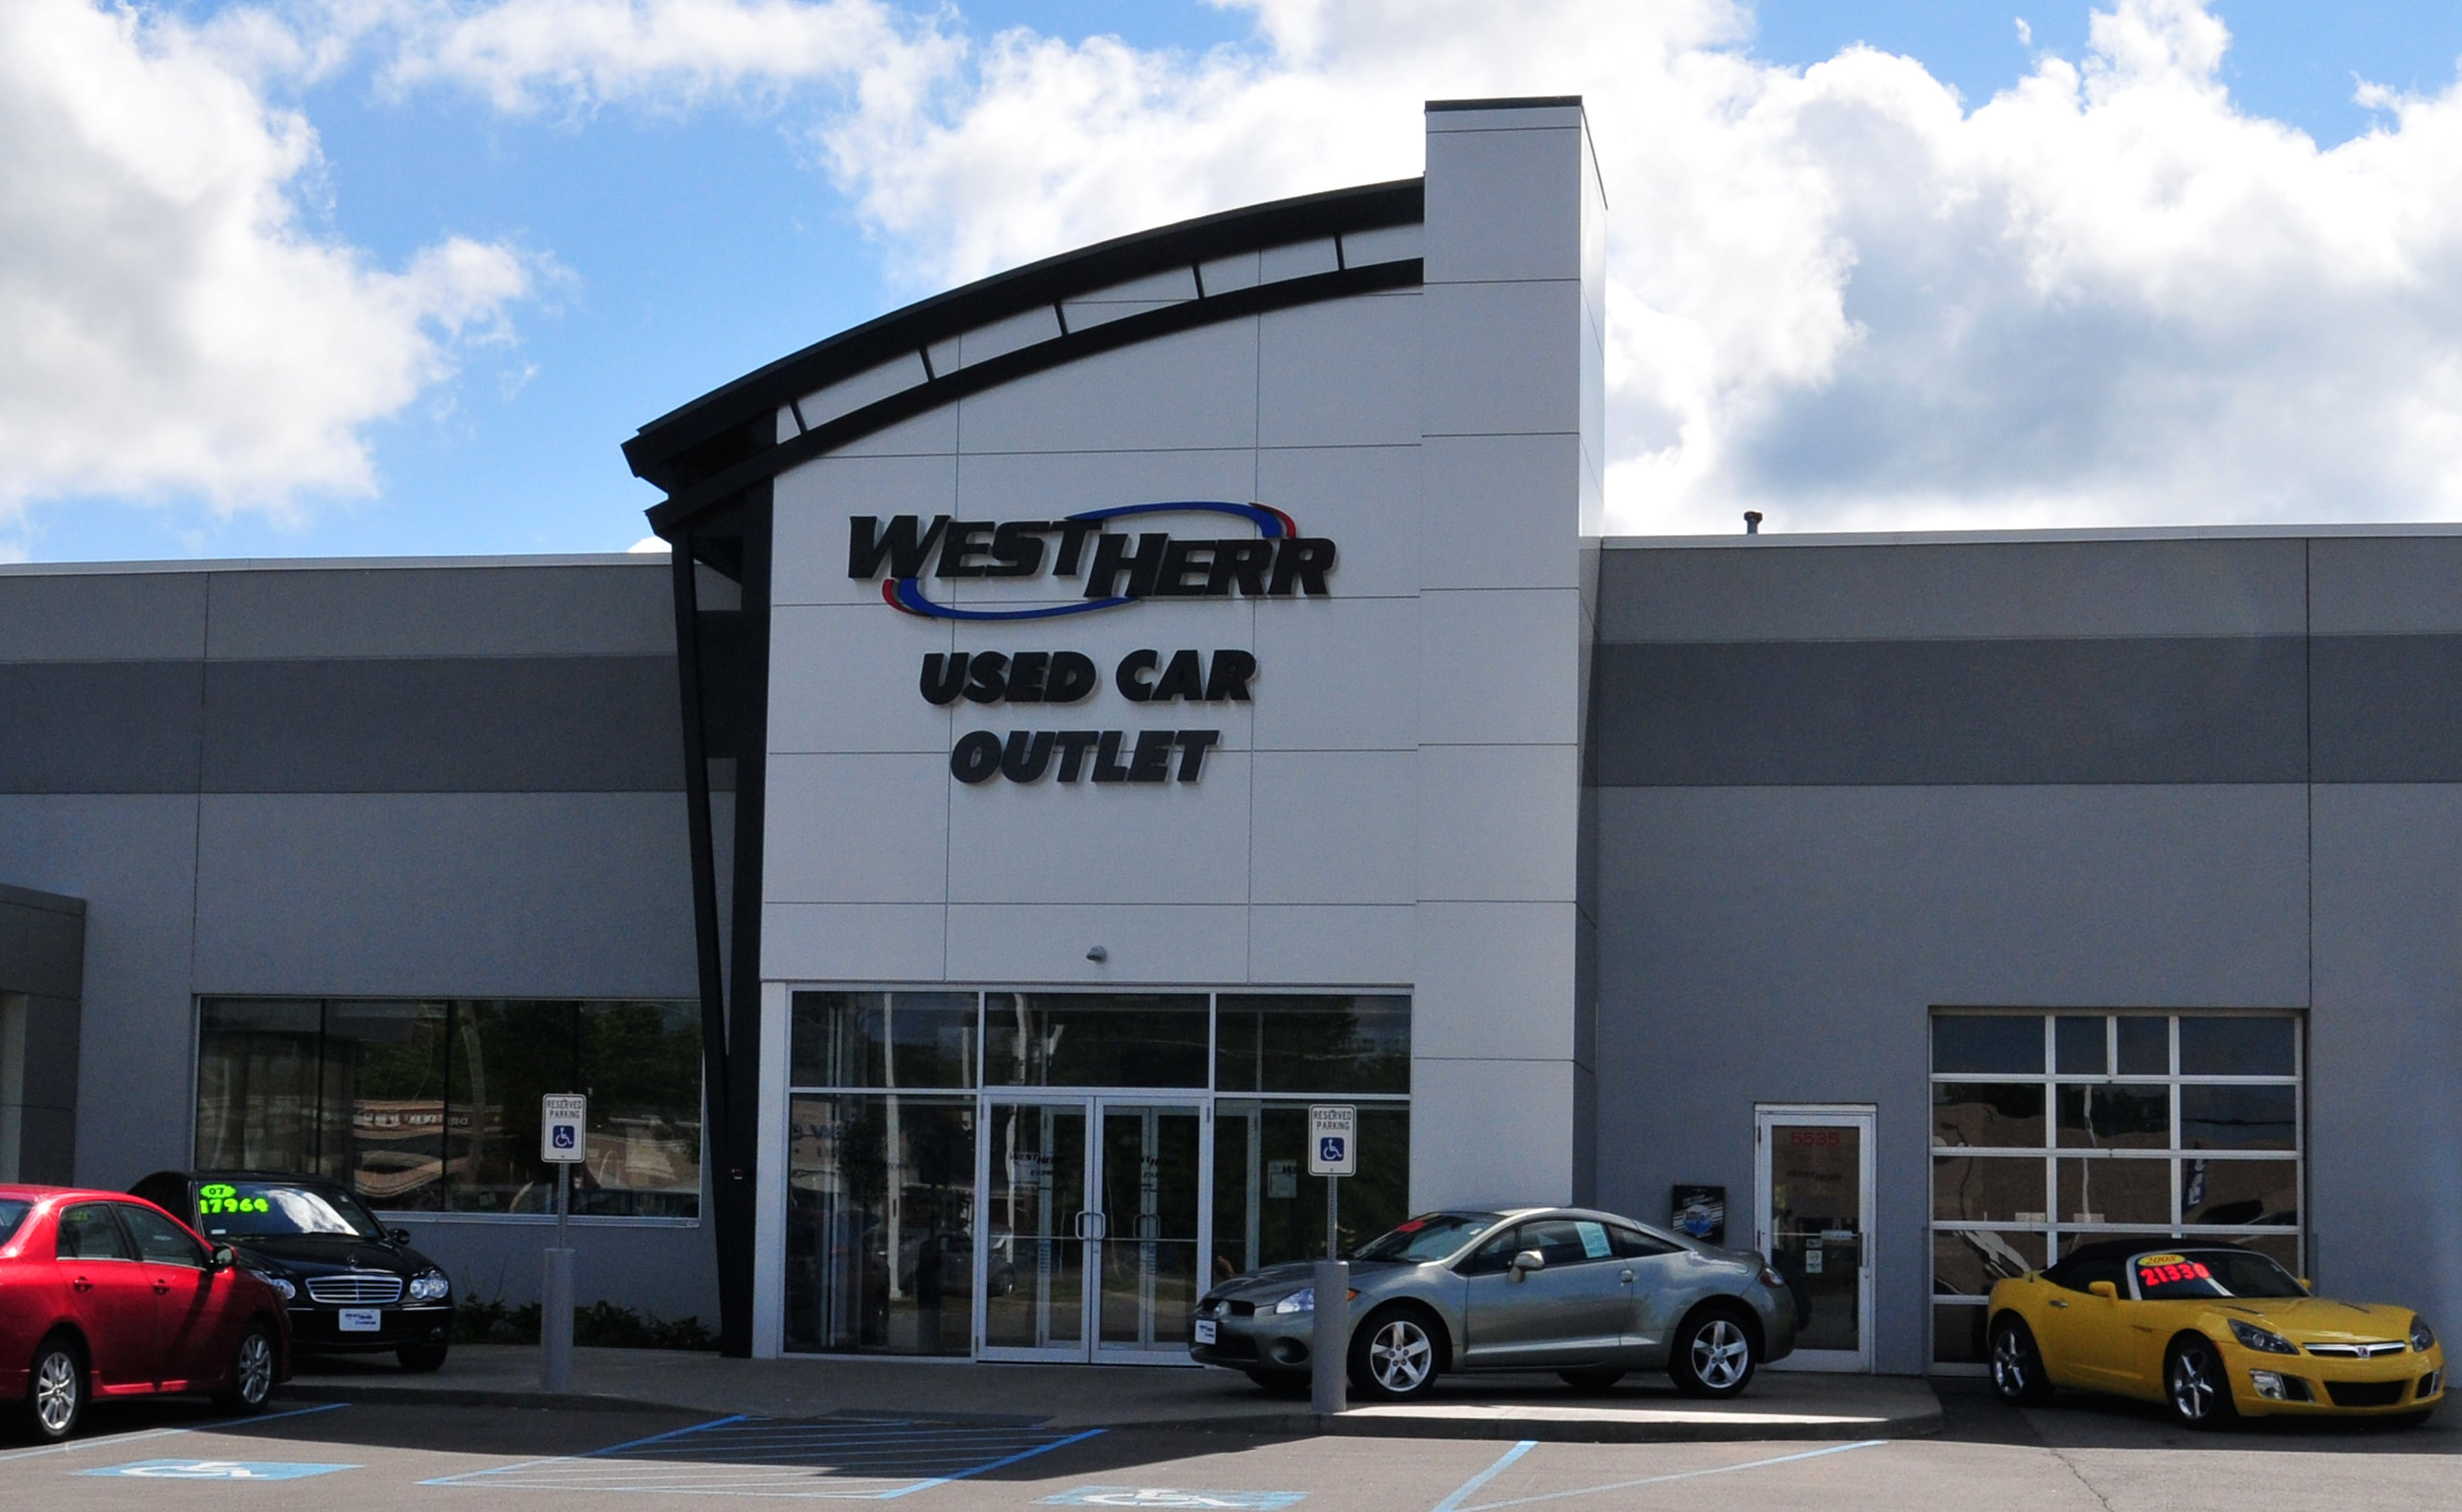 West Herr Used Cars >> West Herr Used Car Outlet New Collision Dealership In